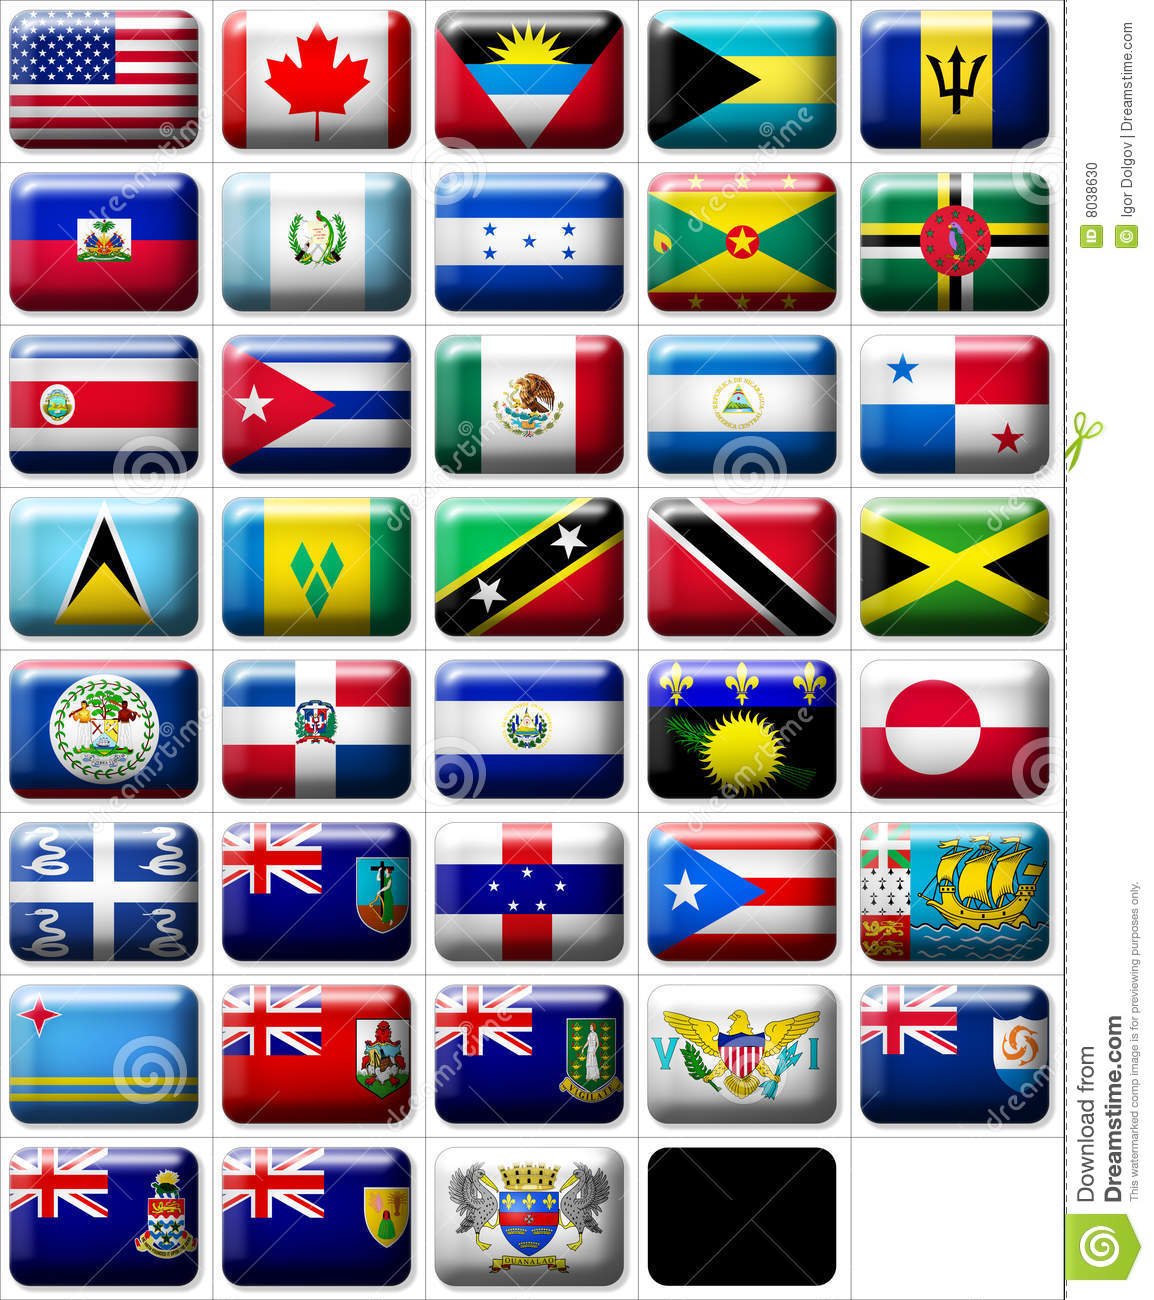 Bssymbols additionally Dreifaltigkeit Symbol 727153 together with World Flags By Design additionally National Bird Of India together with West Indies Federation. on trinidad and tobago symbols